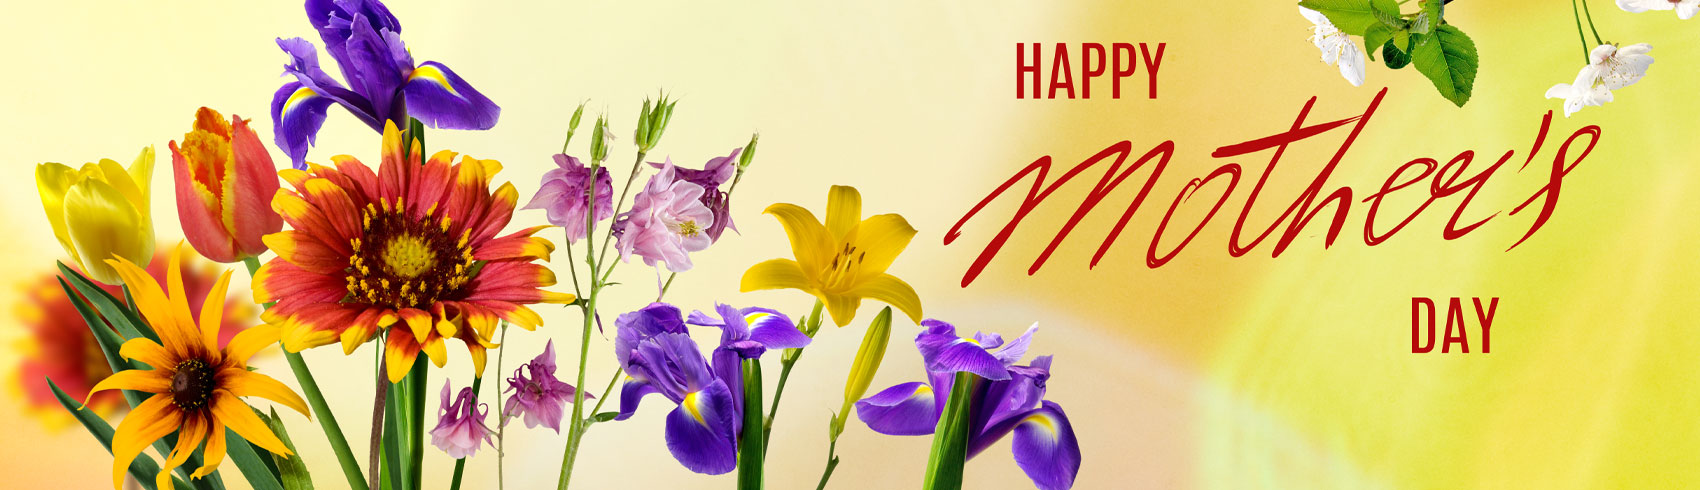 mother-s-day-category-header.jpg